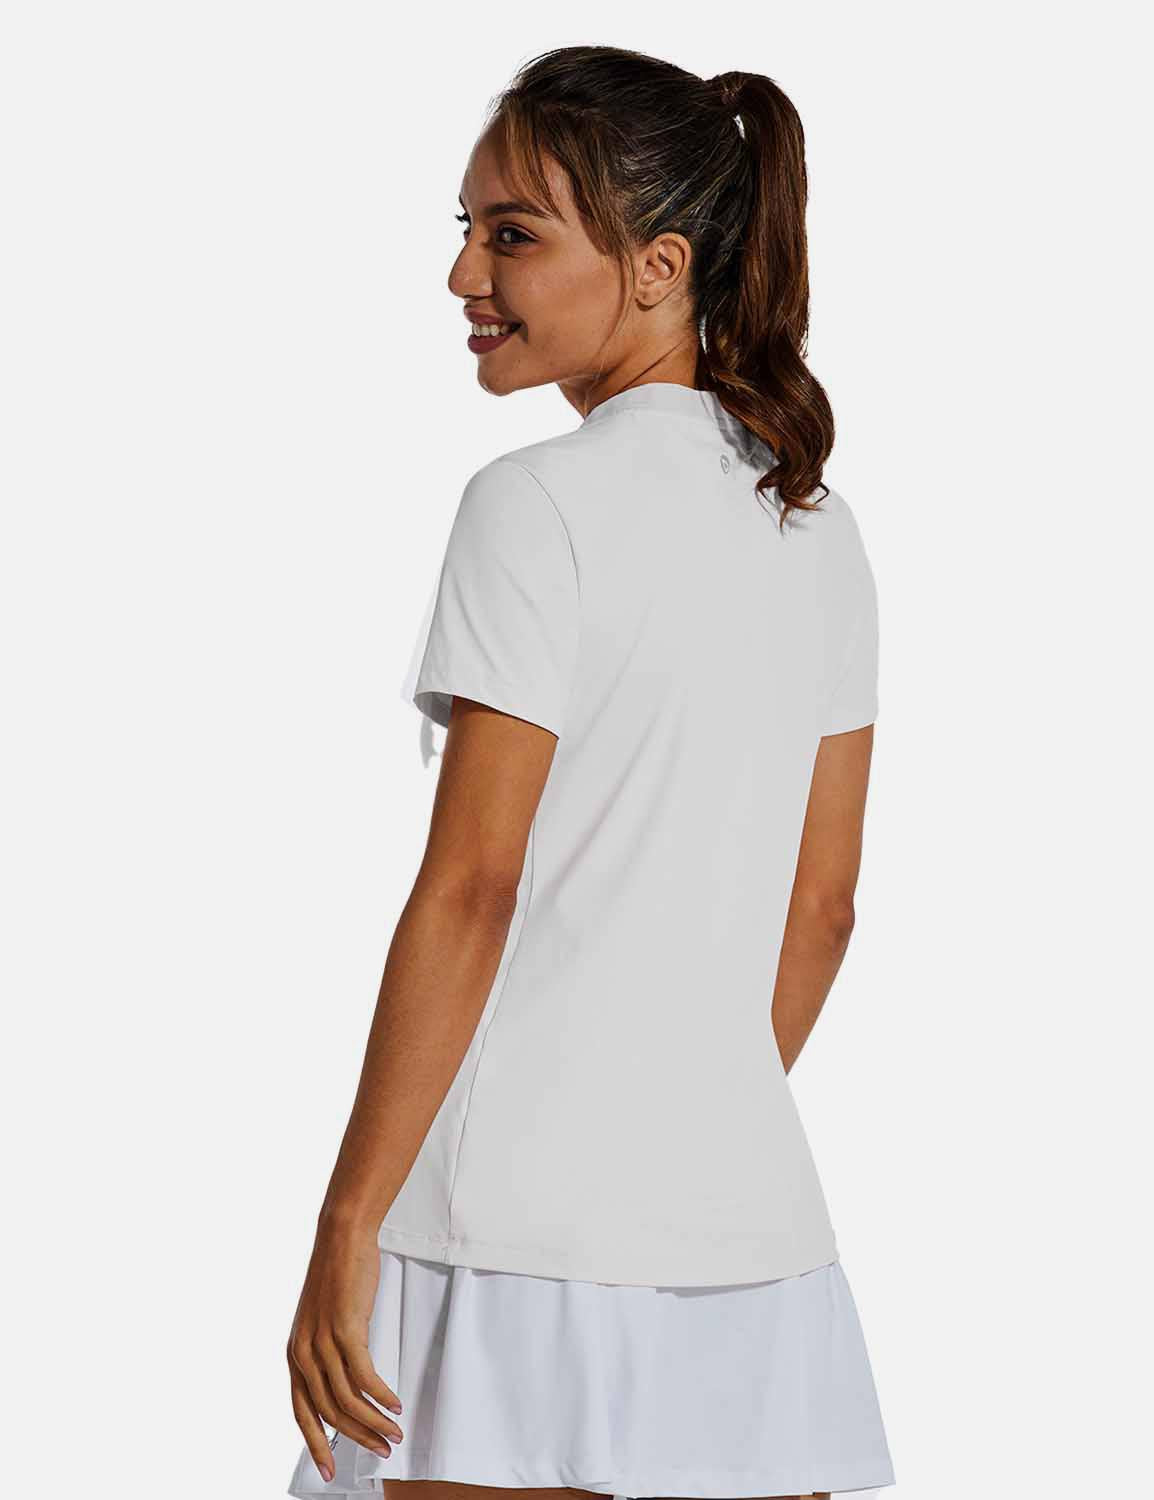 Baleaf Womens UPF50+ Short Sleeved Collarless V Neck Shirts White back